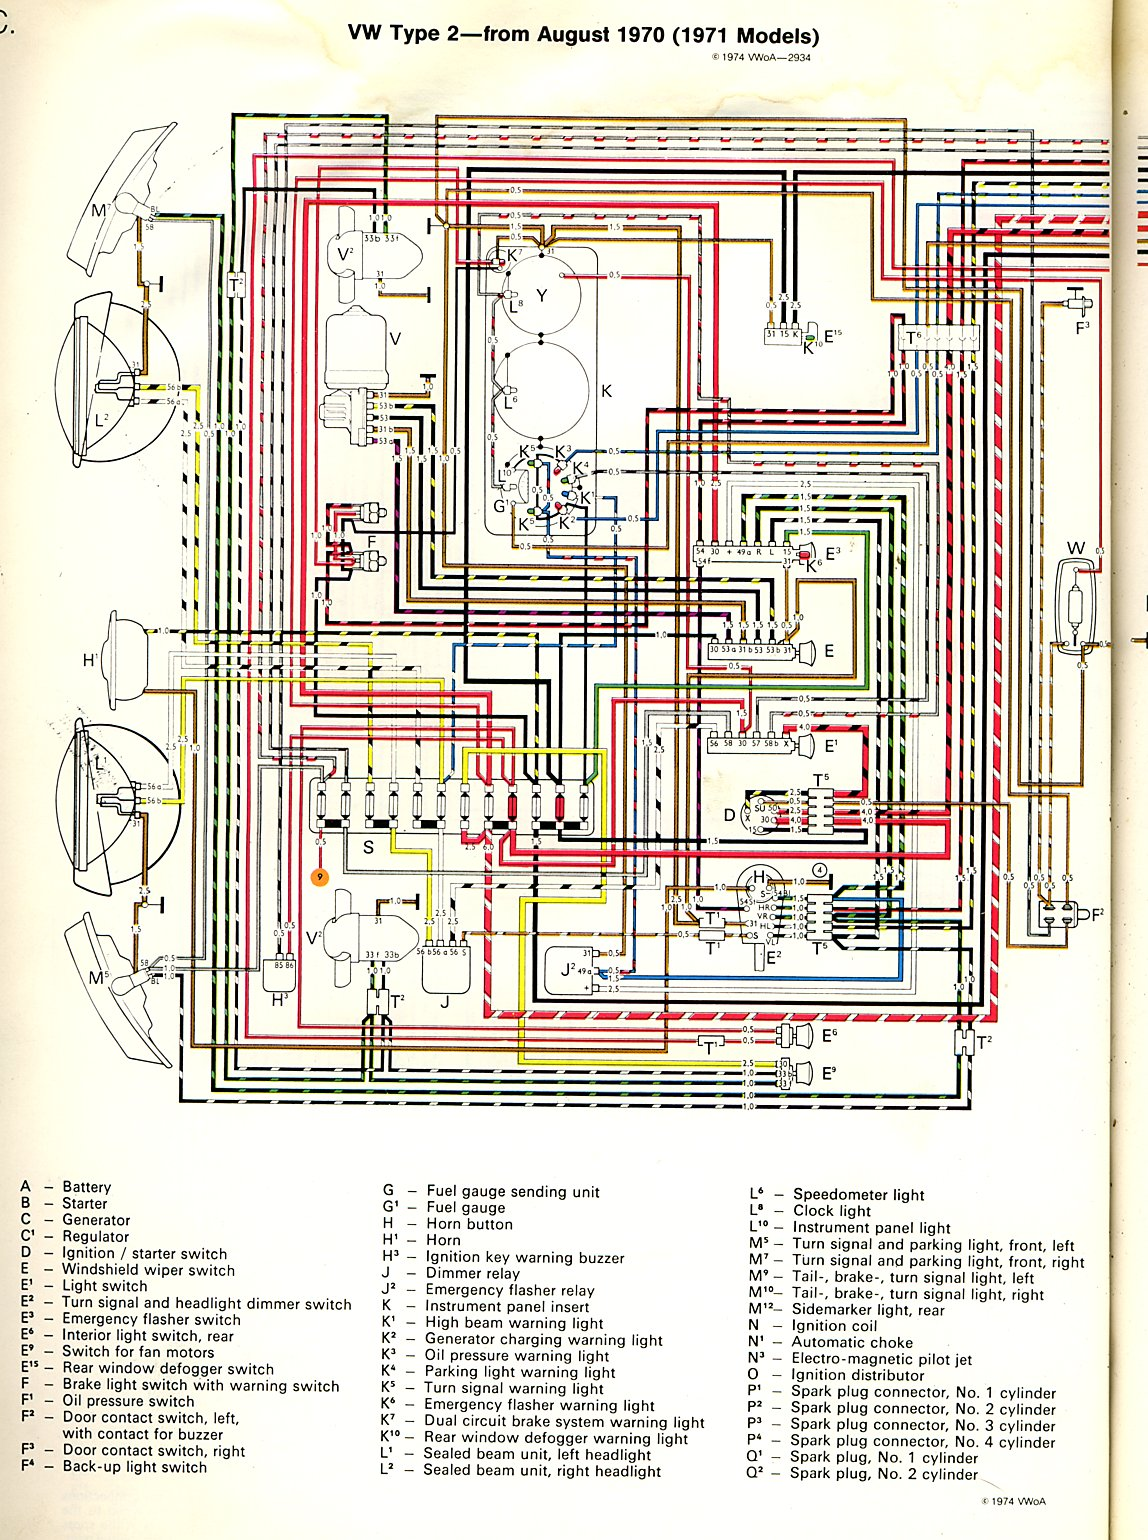 baybus_71a thesamba com type 2 wiring diagrams 1971 vw bus wiring diagram at nearapp.co